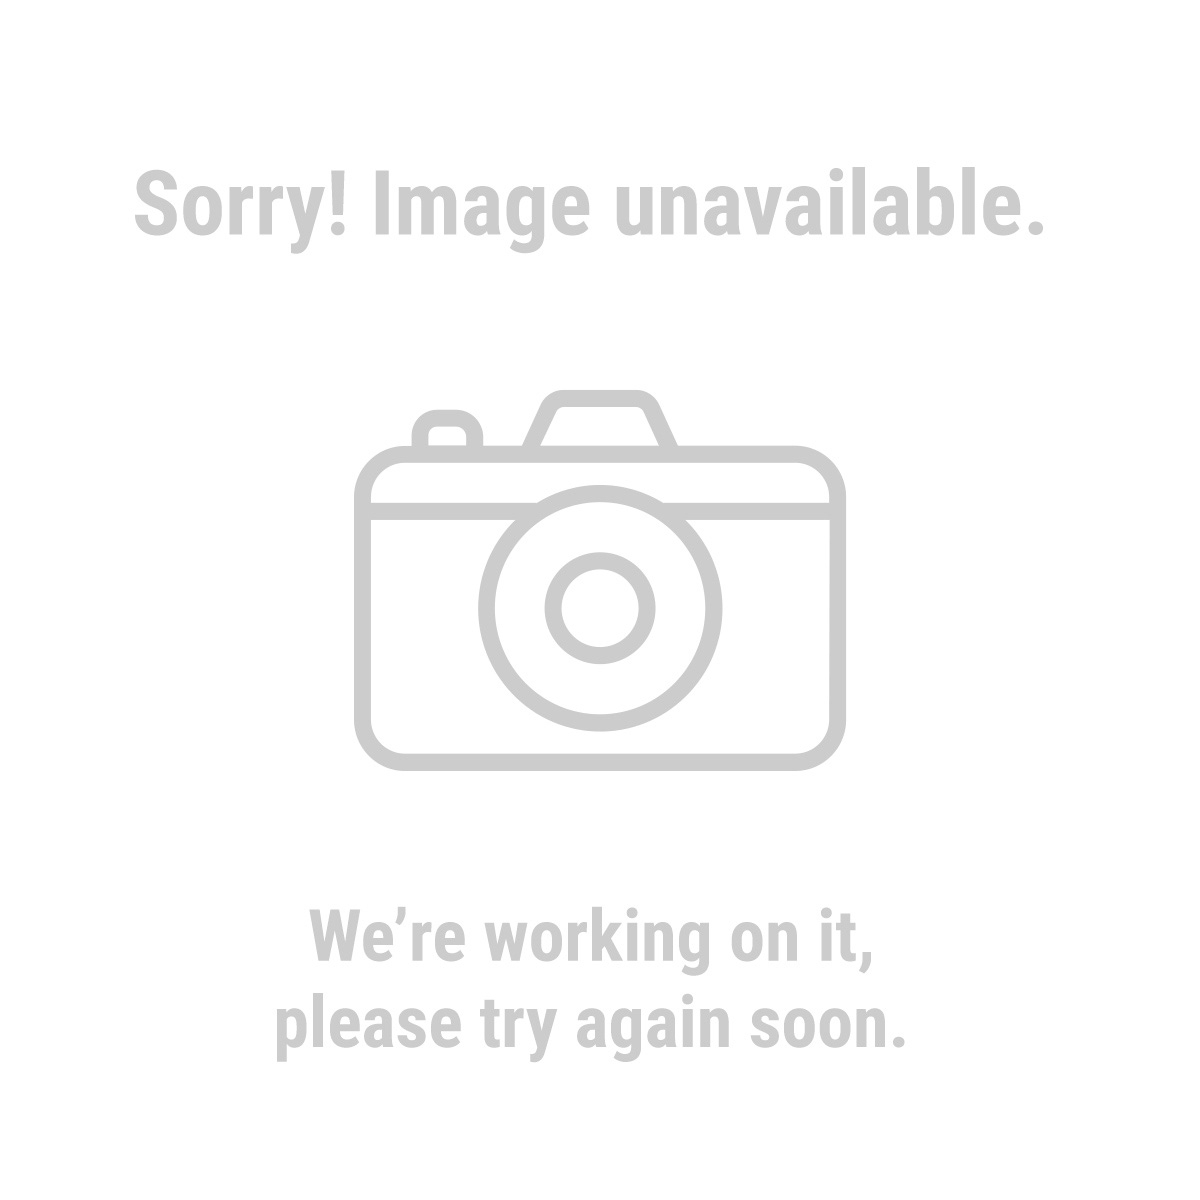 Western Safety 97849 Hearing Protector